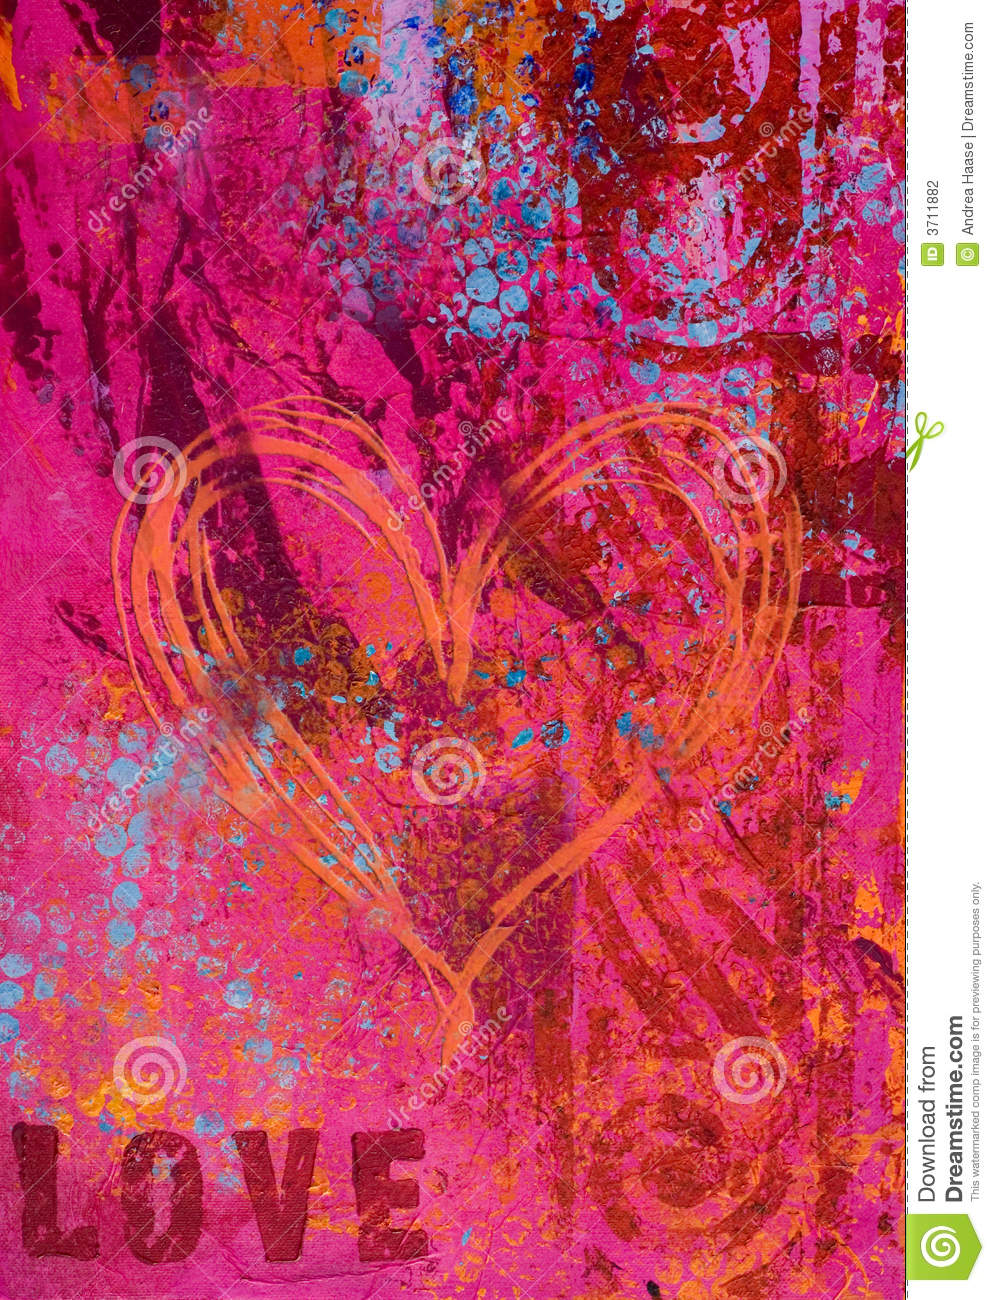 Artwork background love stock illustration. Illustration ...